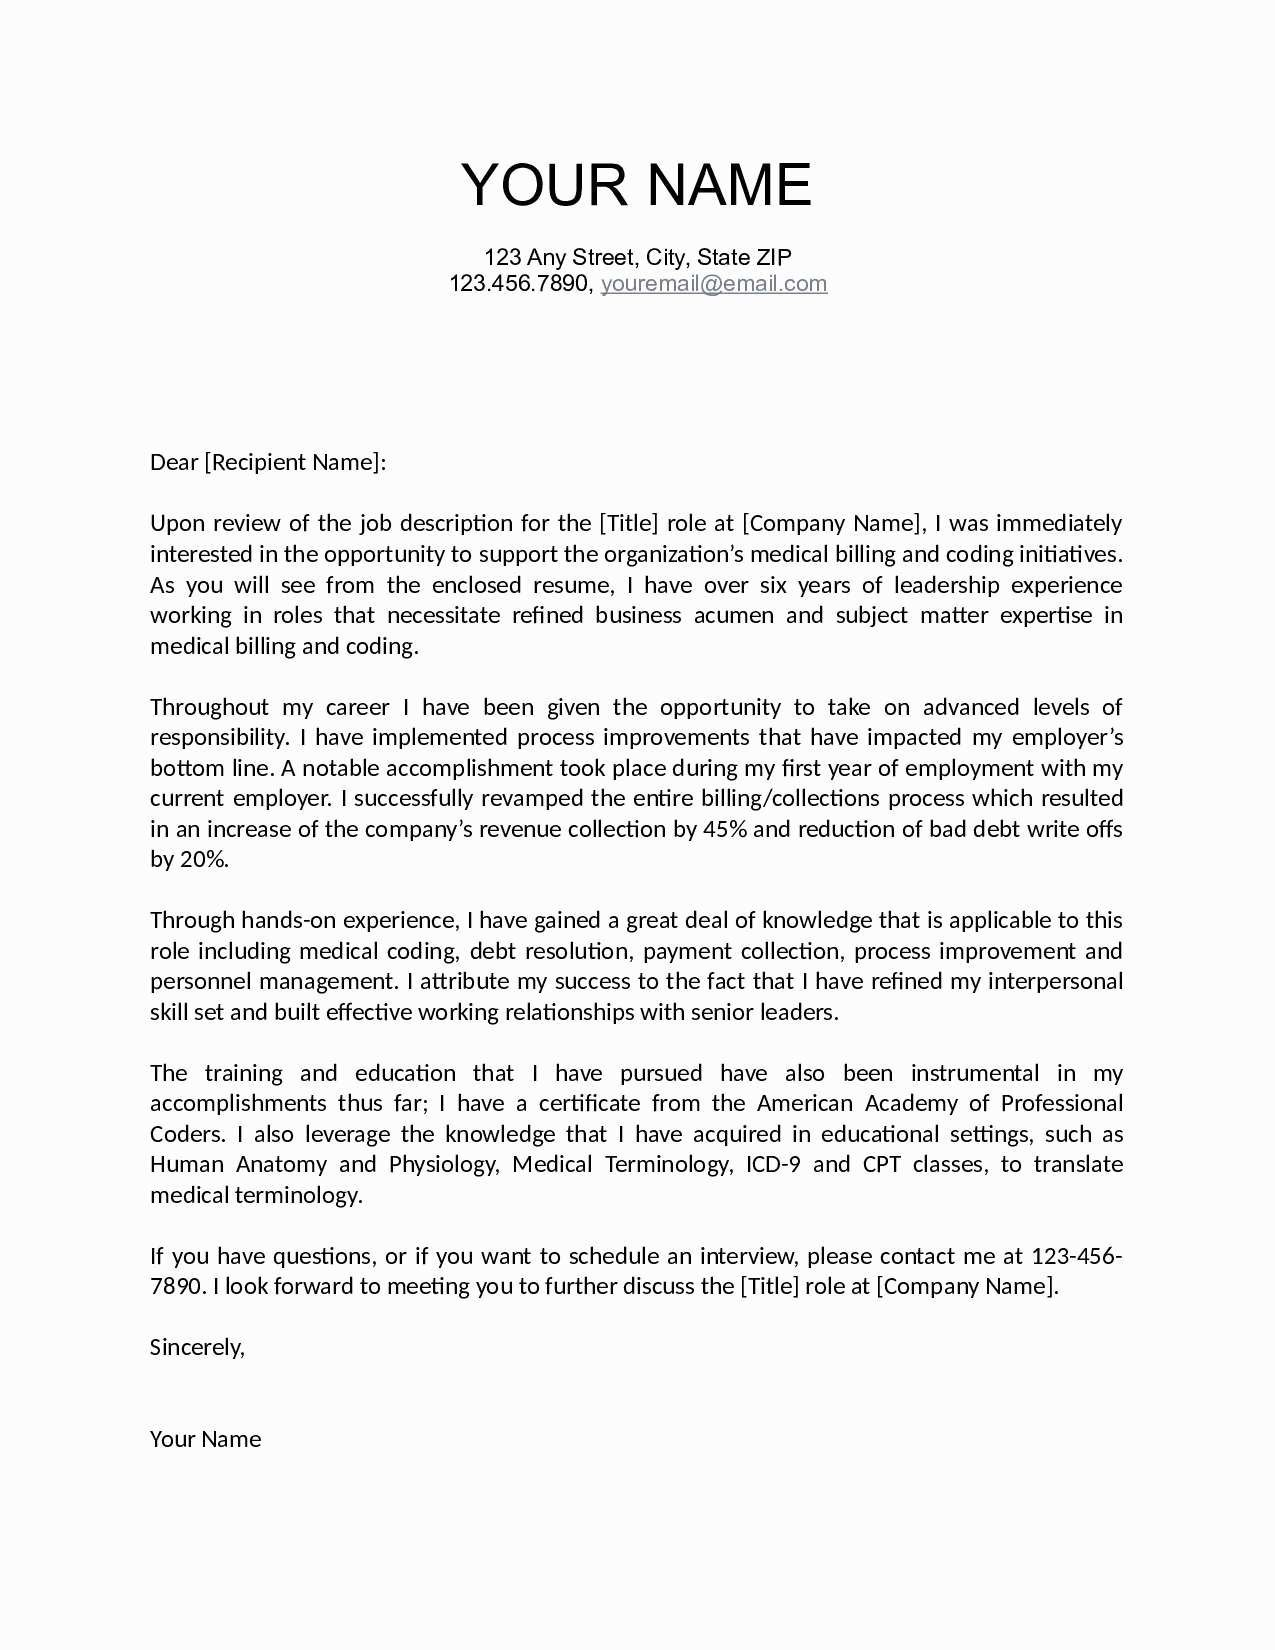 Ema Cover Letter Template - Cover Letter for Oil and Gas Job Save Lovely Job Fer Letter Template